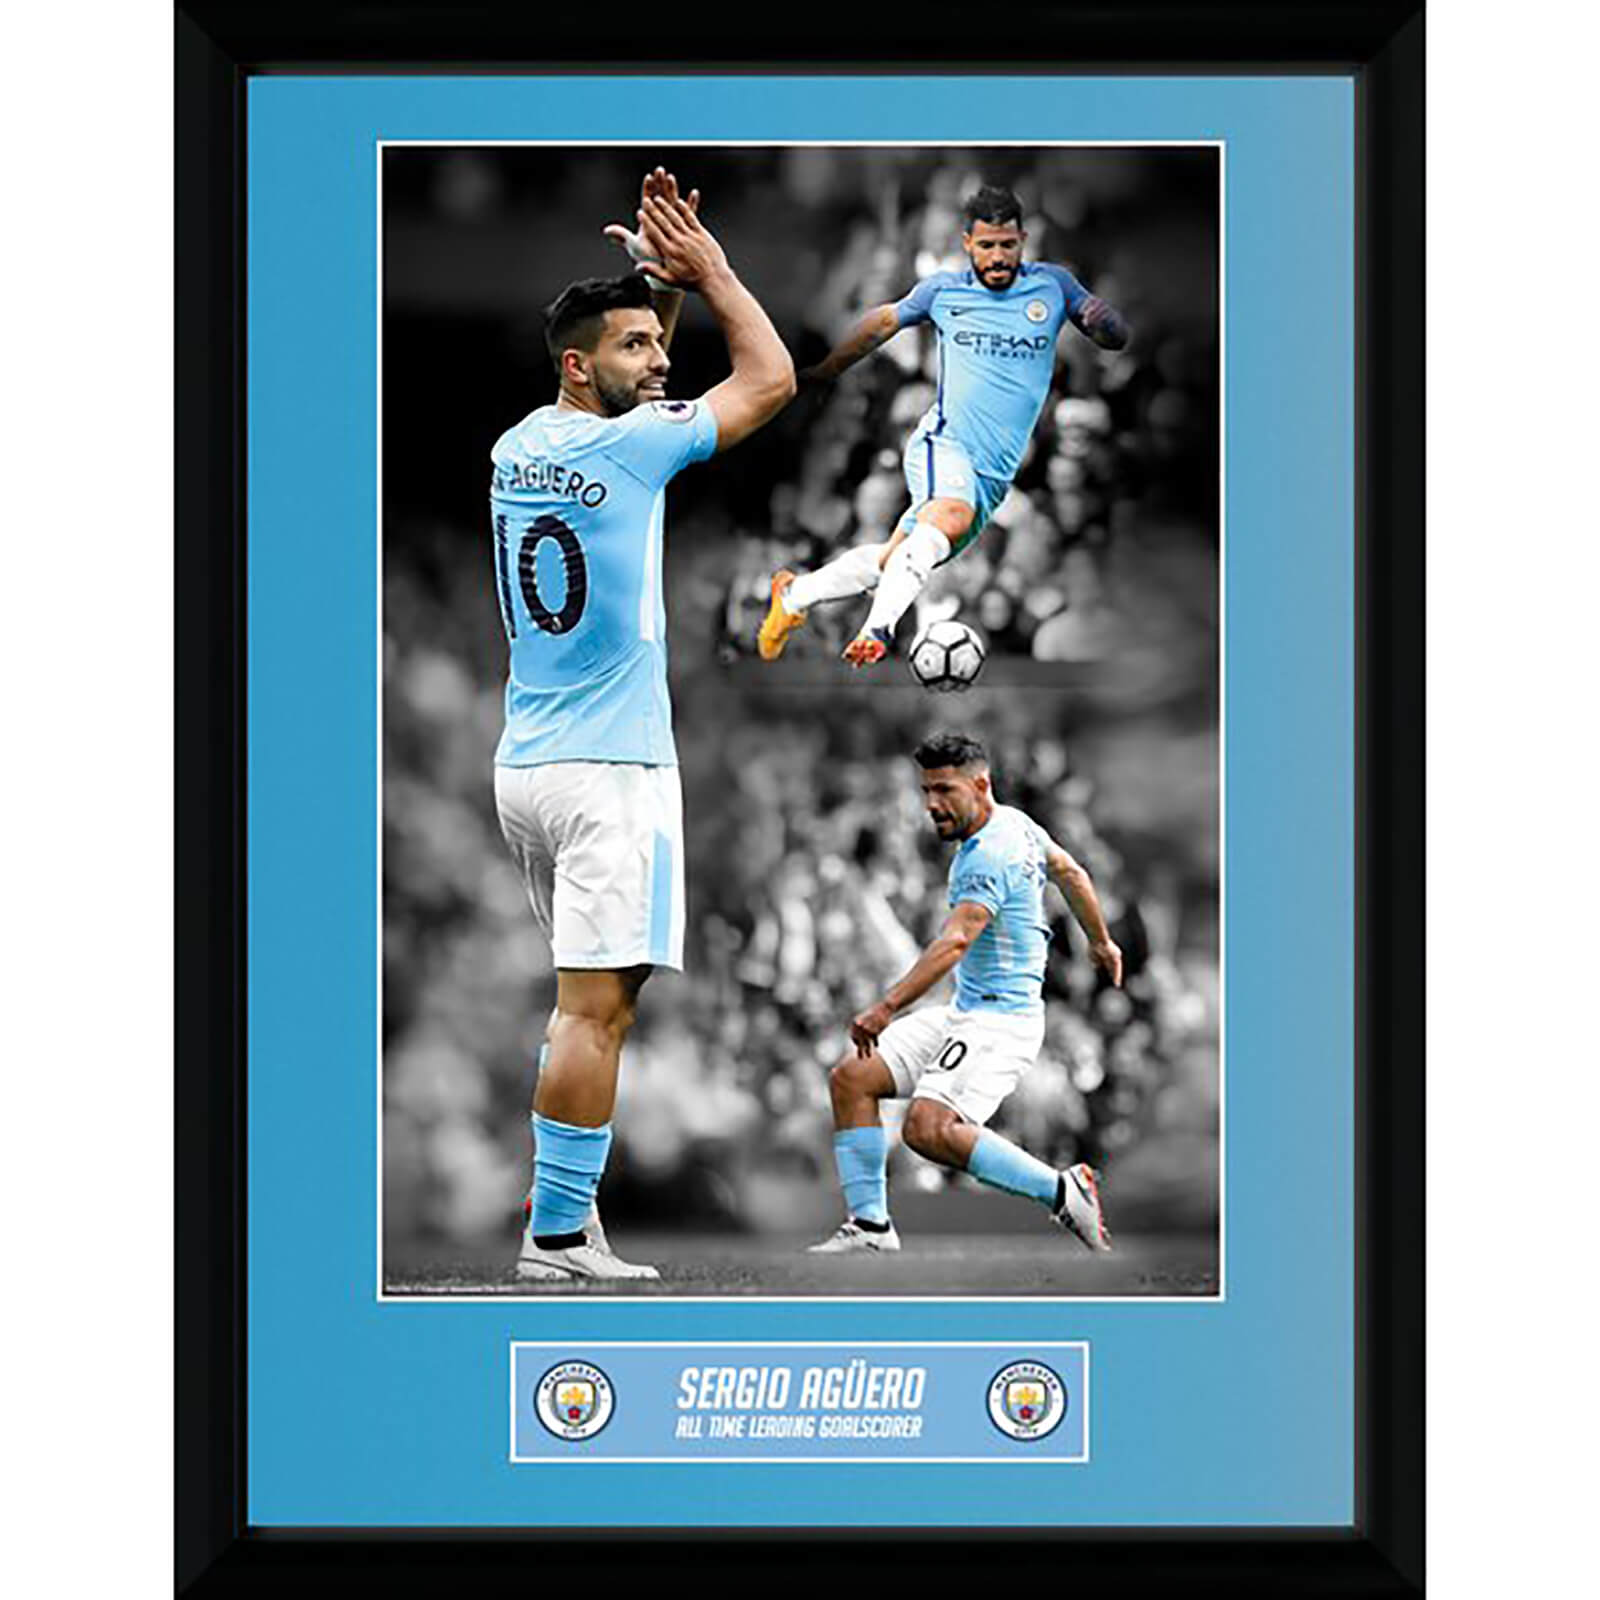 Manchester City Aguero Goalscorer Framed Photograph 12 x 16 Inch